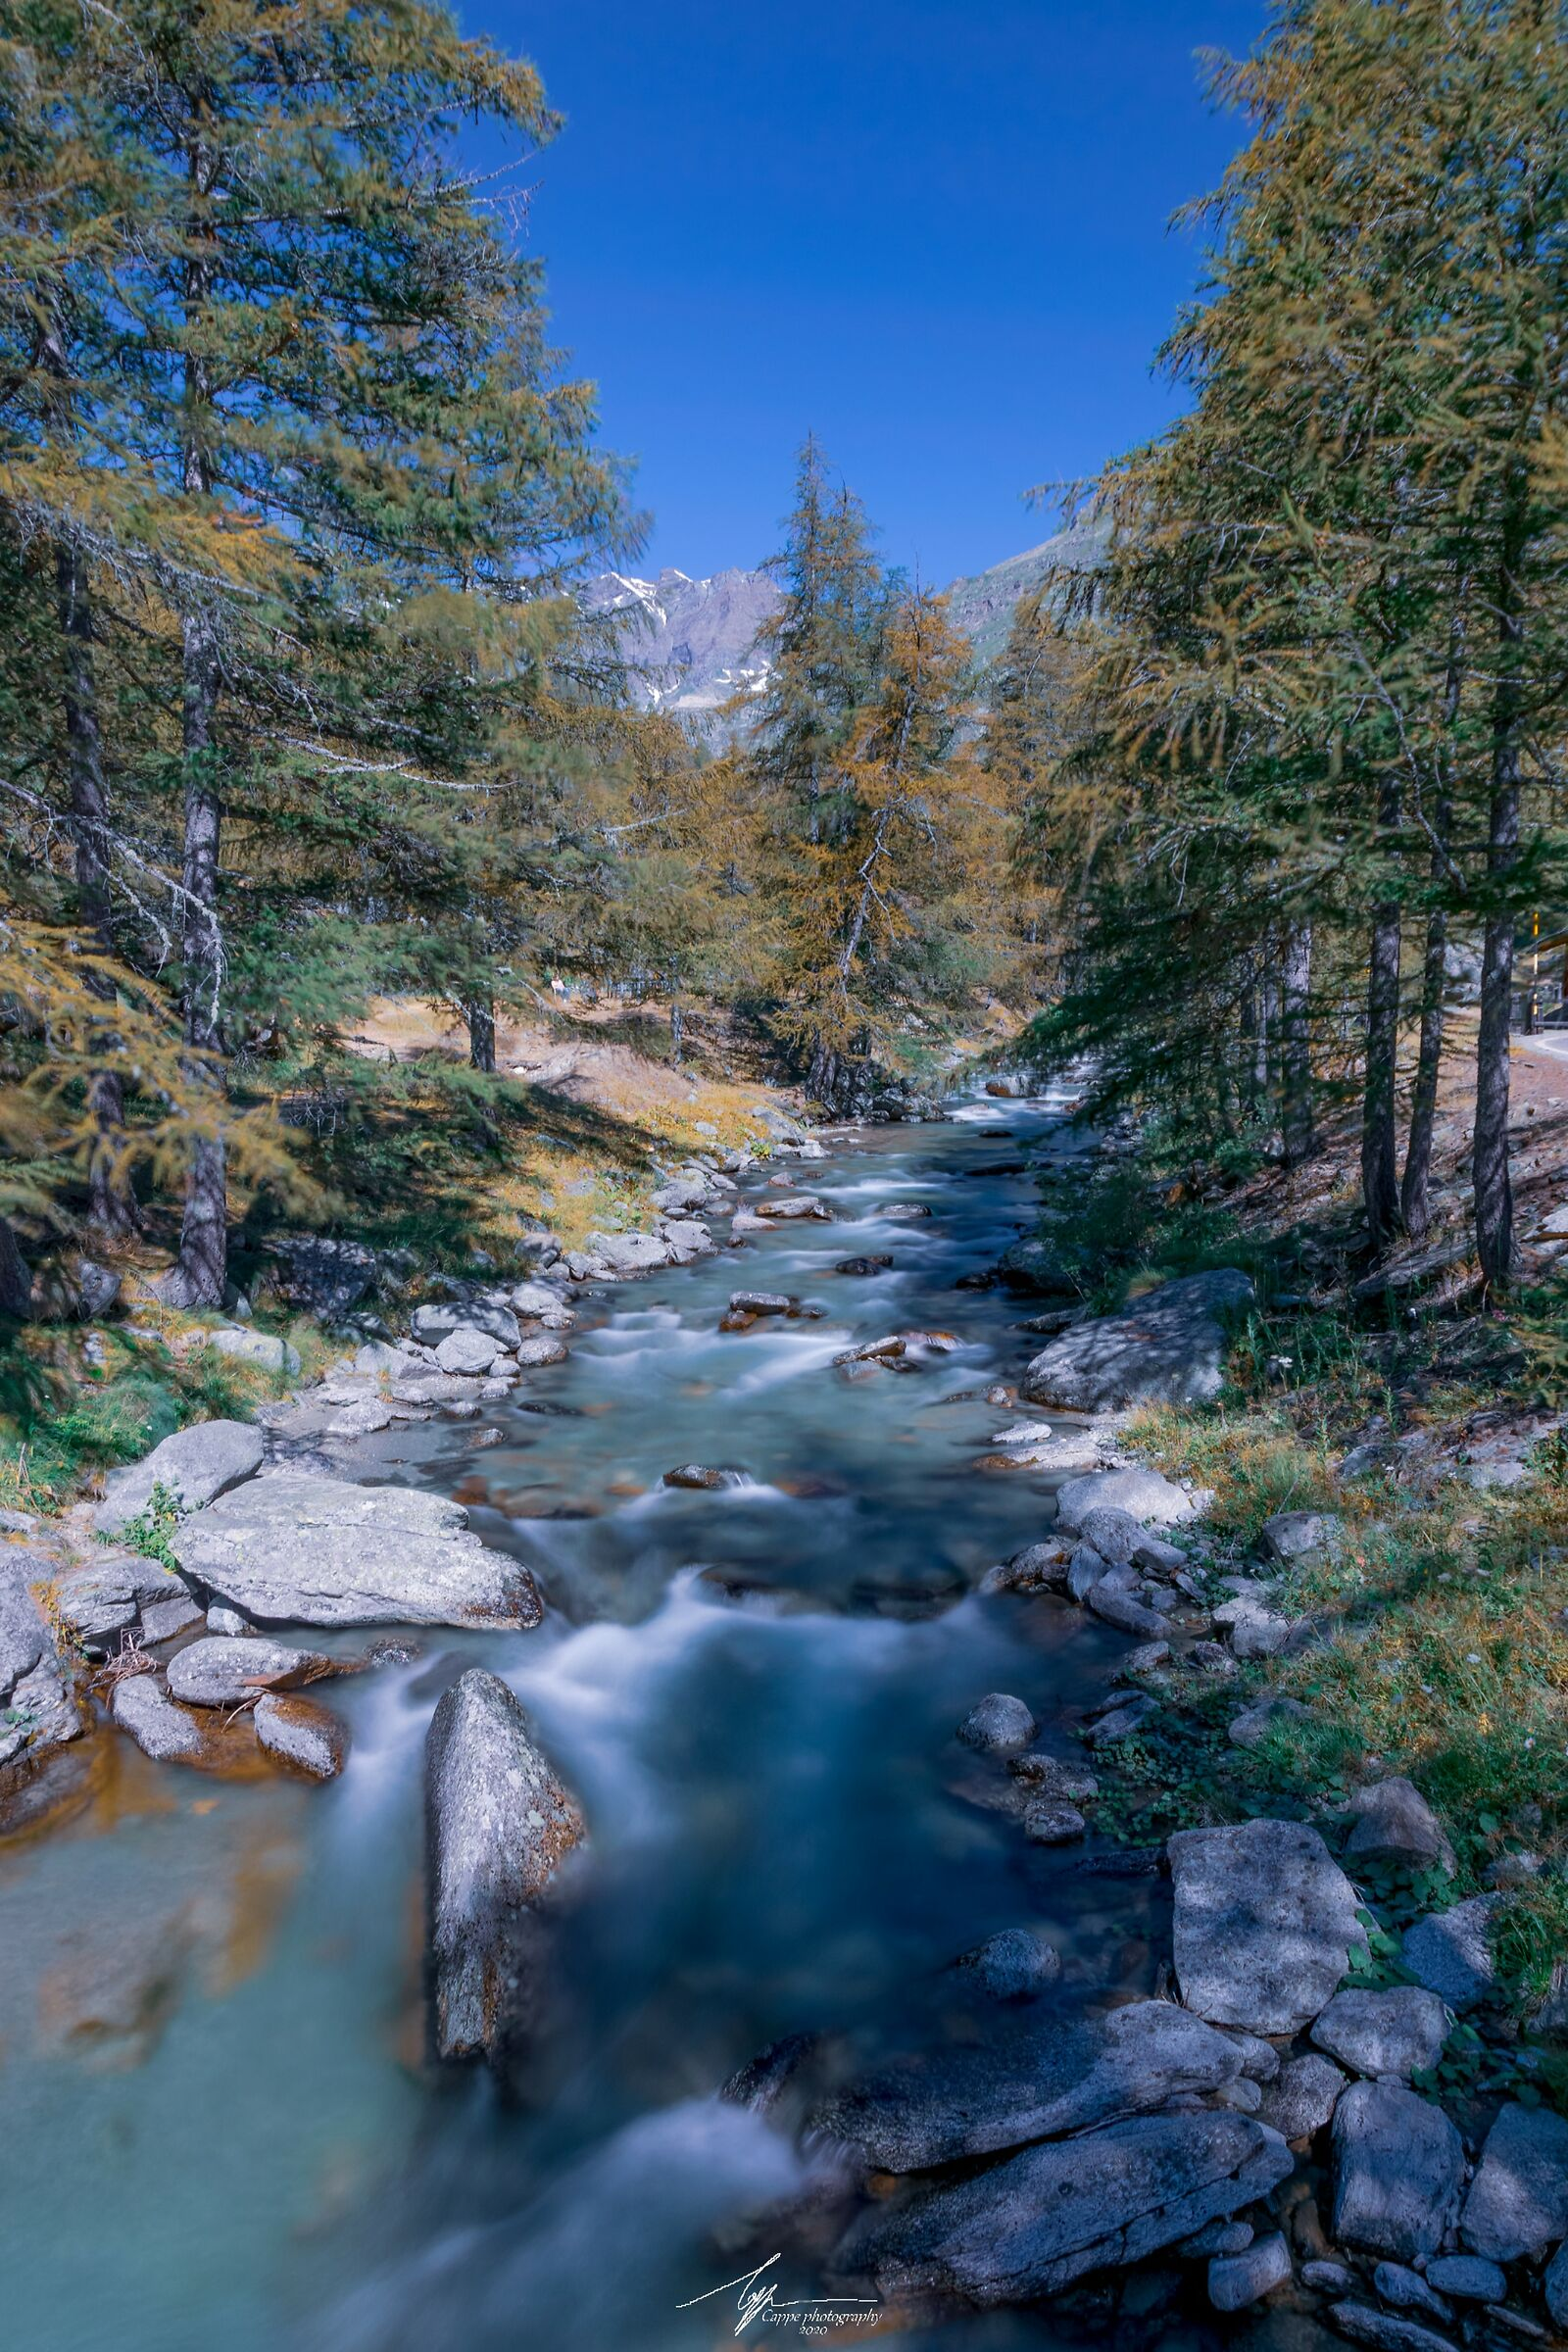 Orc Stream in Ceresole Reale...